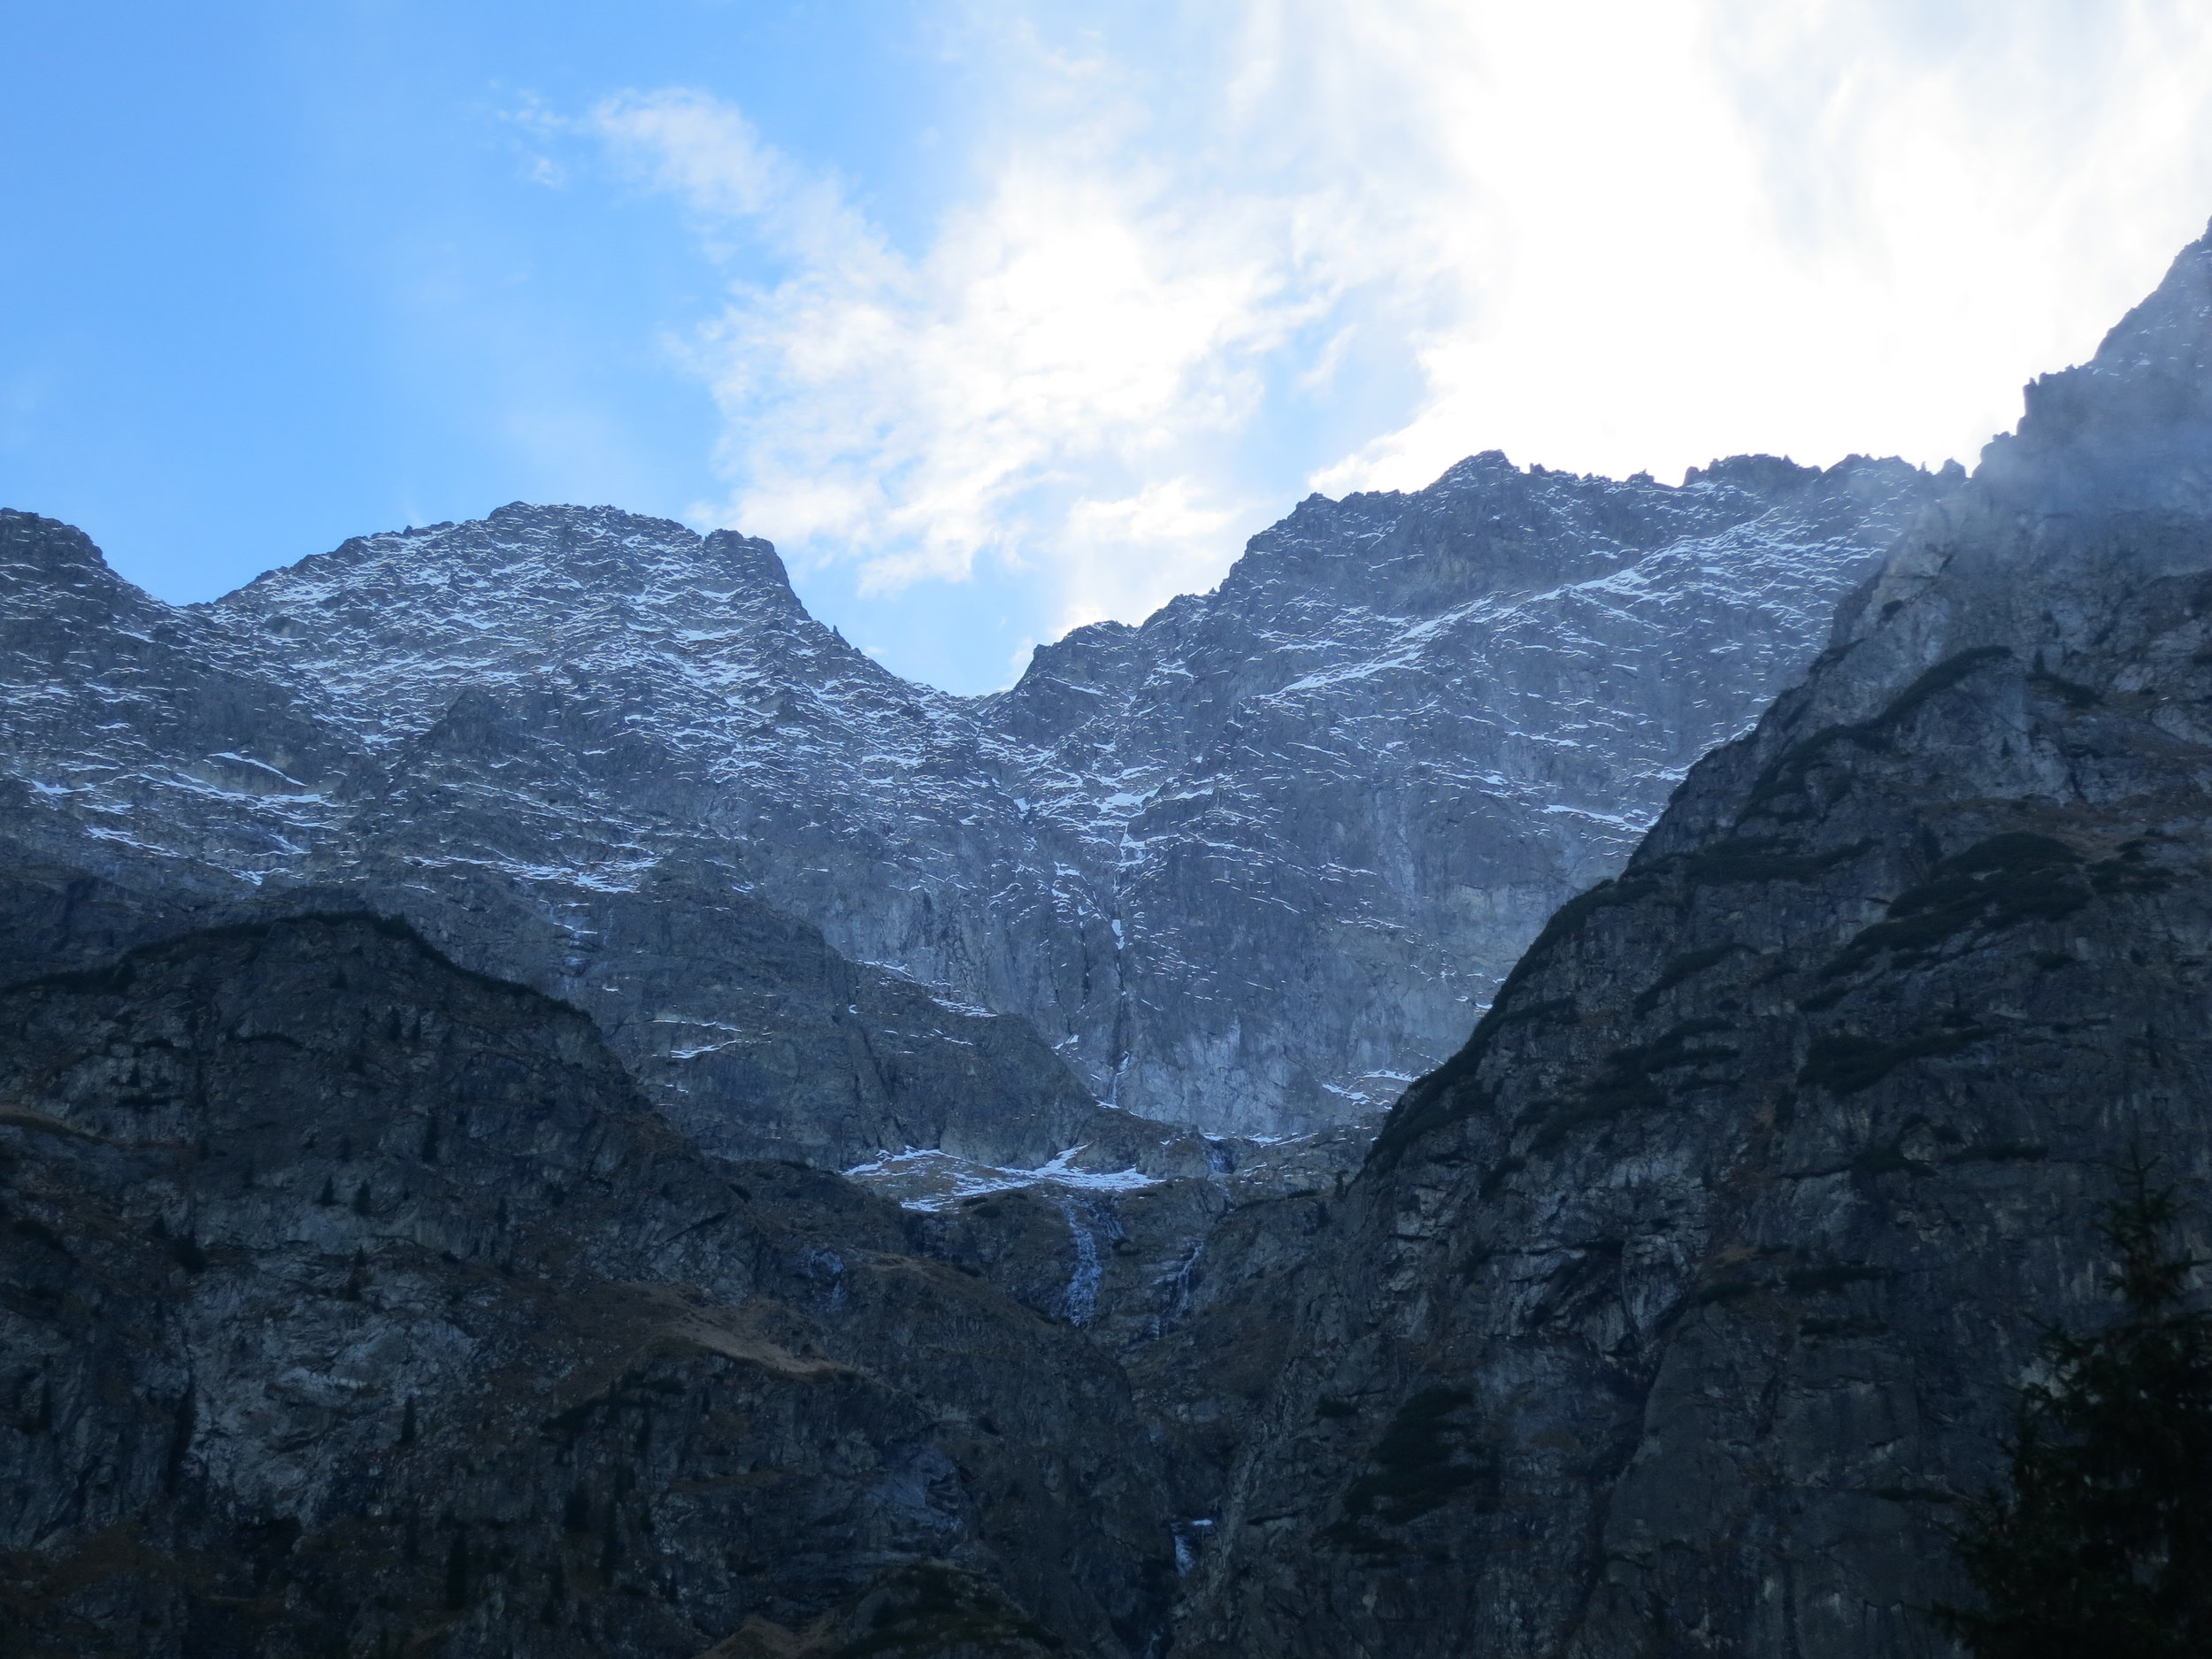 Peaks in the Tatra Mountains in Southern Poland.